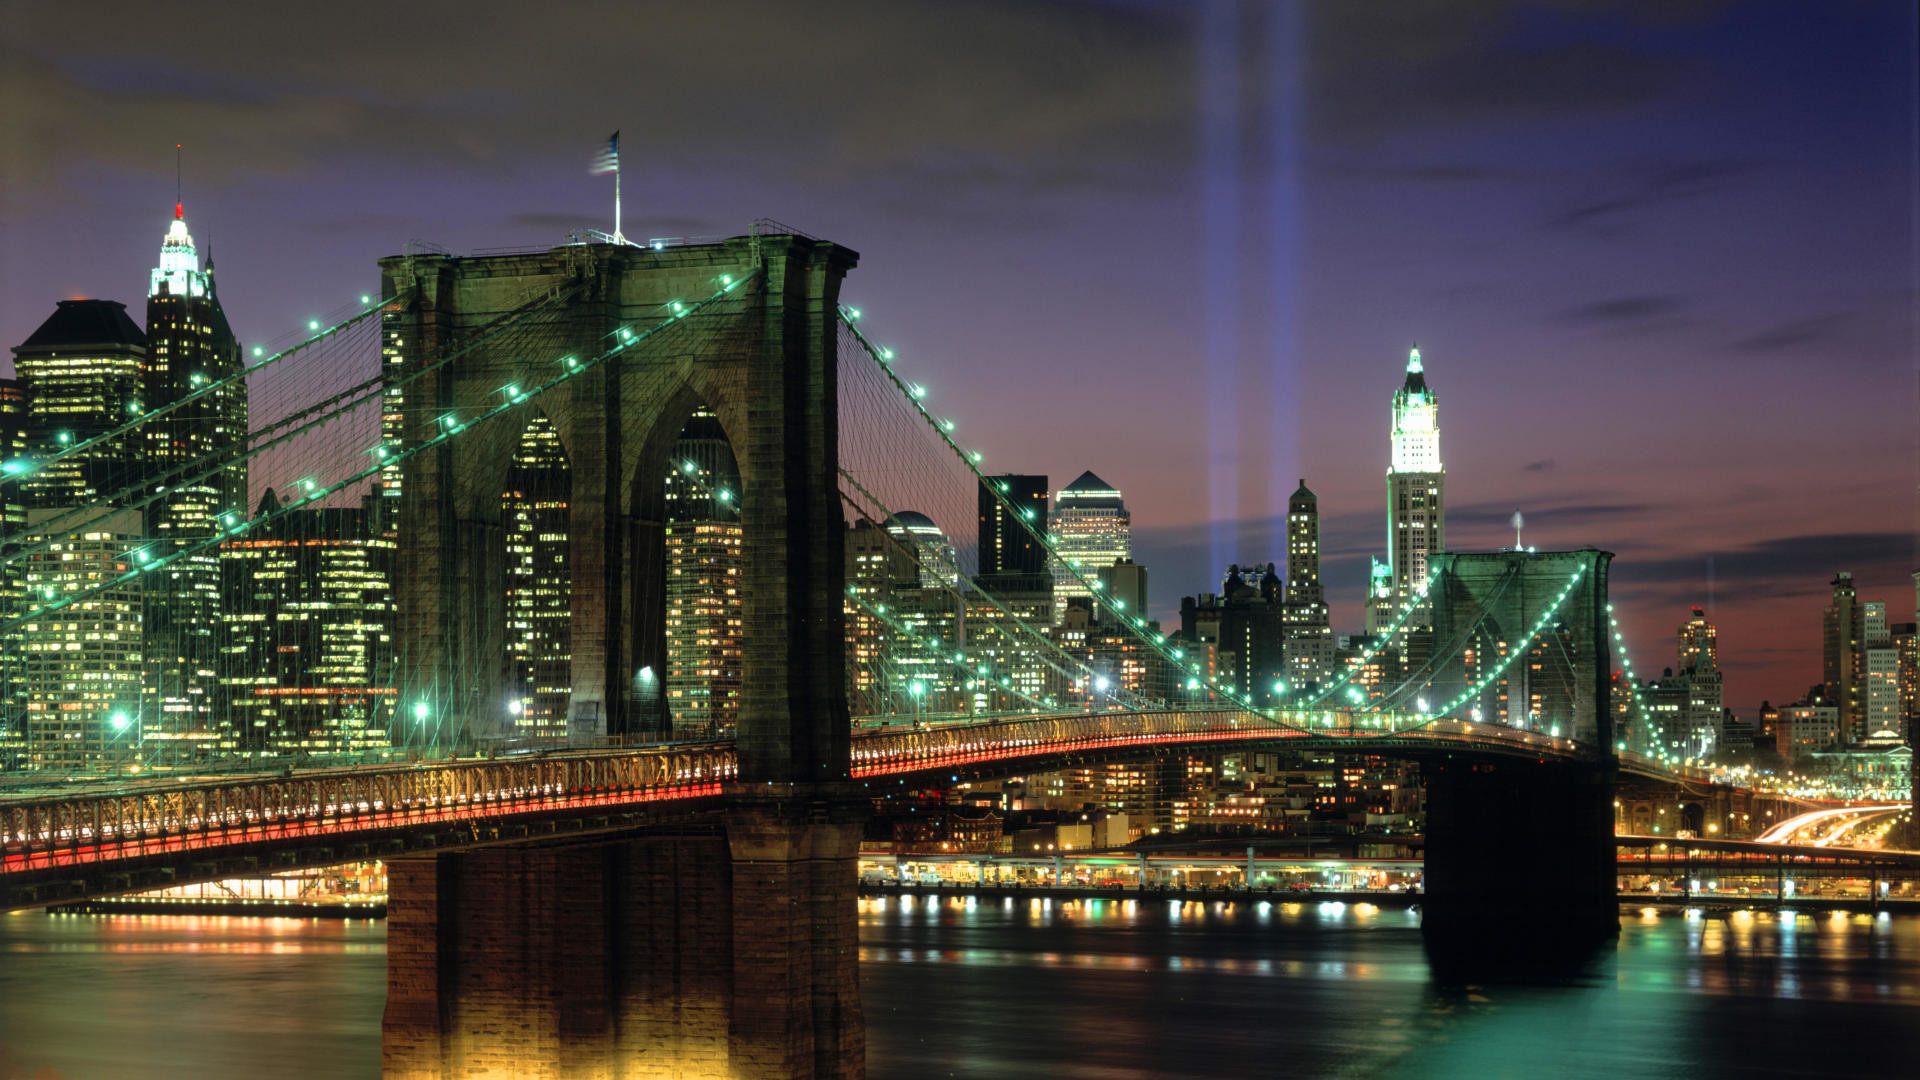 1920x1080 Download Background - Tribute in Light, New York City, New York - Free Cool  Backgrounds and Wallpapers for your Desktop Or Laptop.